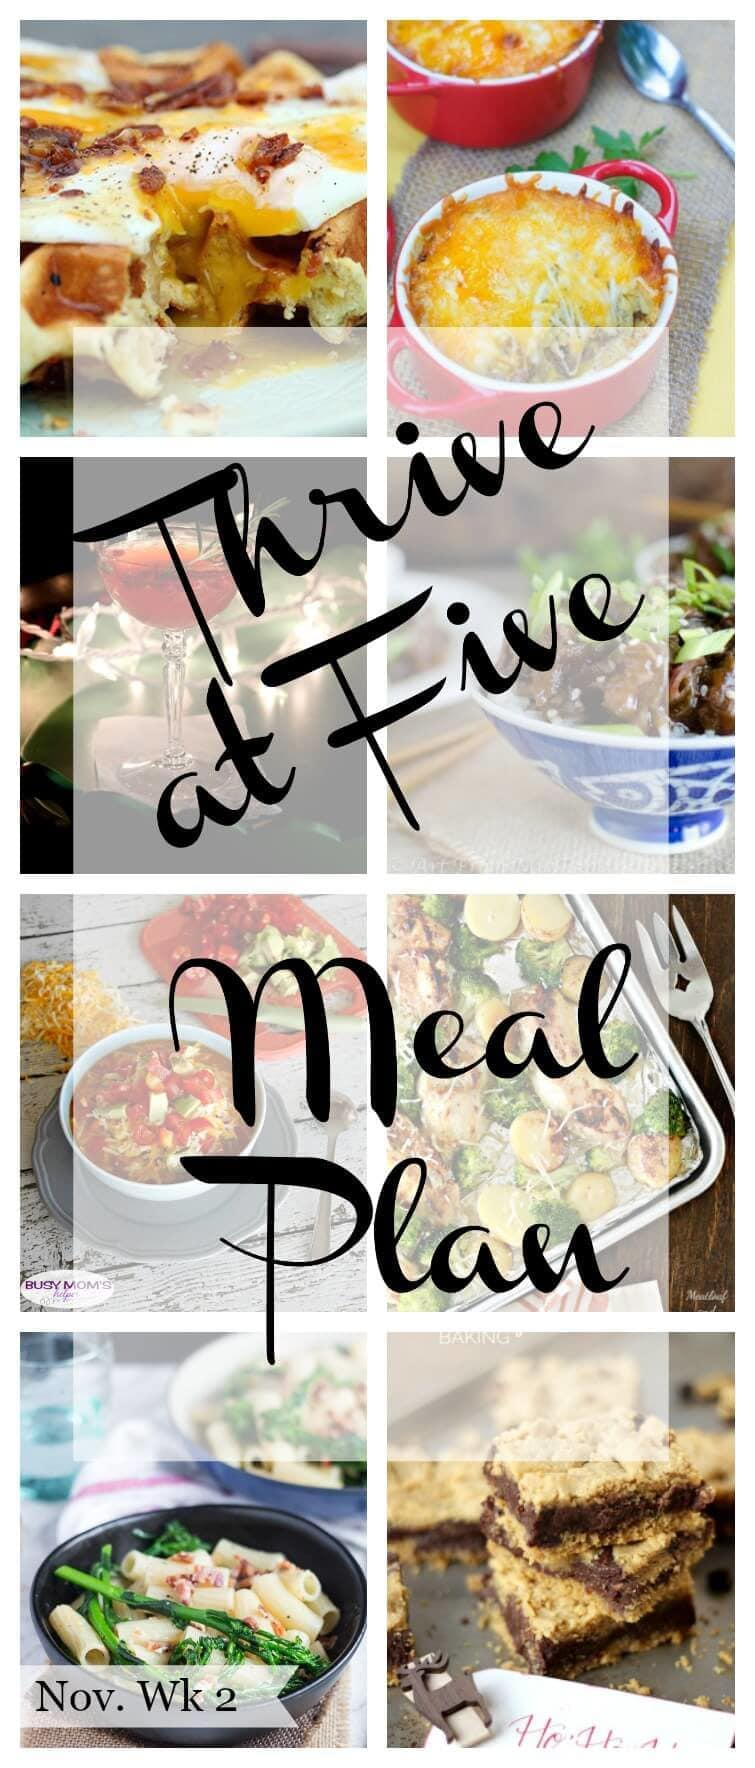 Thrive at Five Meal Plan – Week #2 ~ A weekly meal plan for busy parents. This week's plan features a delicious and simple sweet plantain casserole, a succulent slow cooker Mongolian beef and even a festive cocktail for your holiday fix.